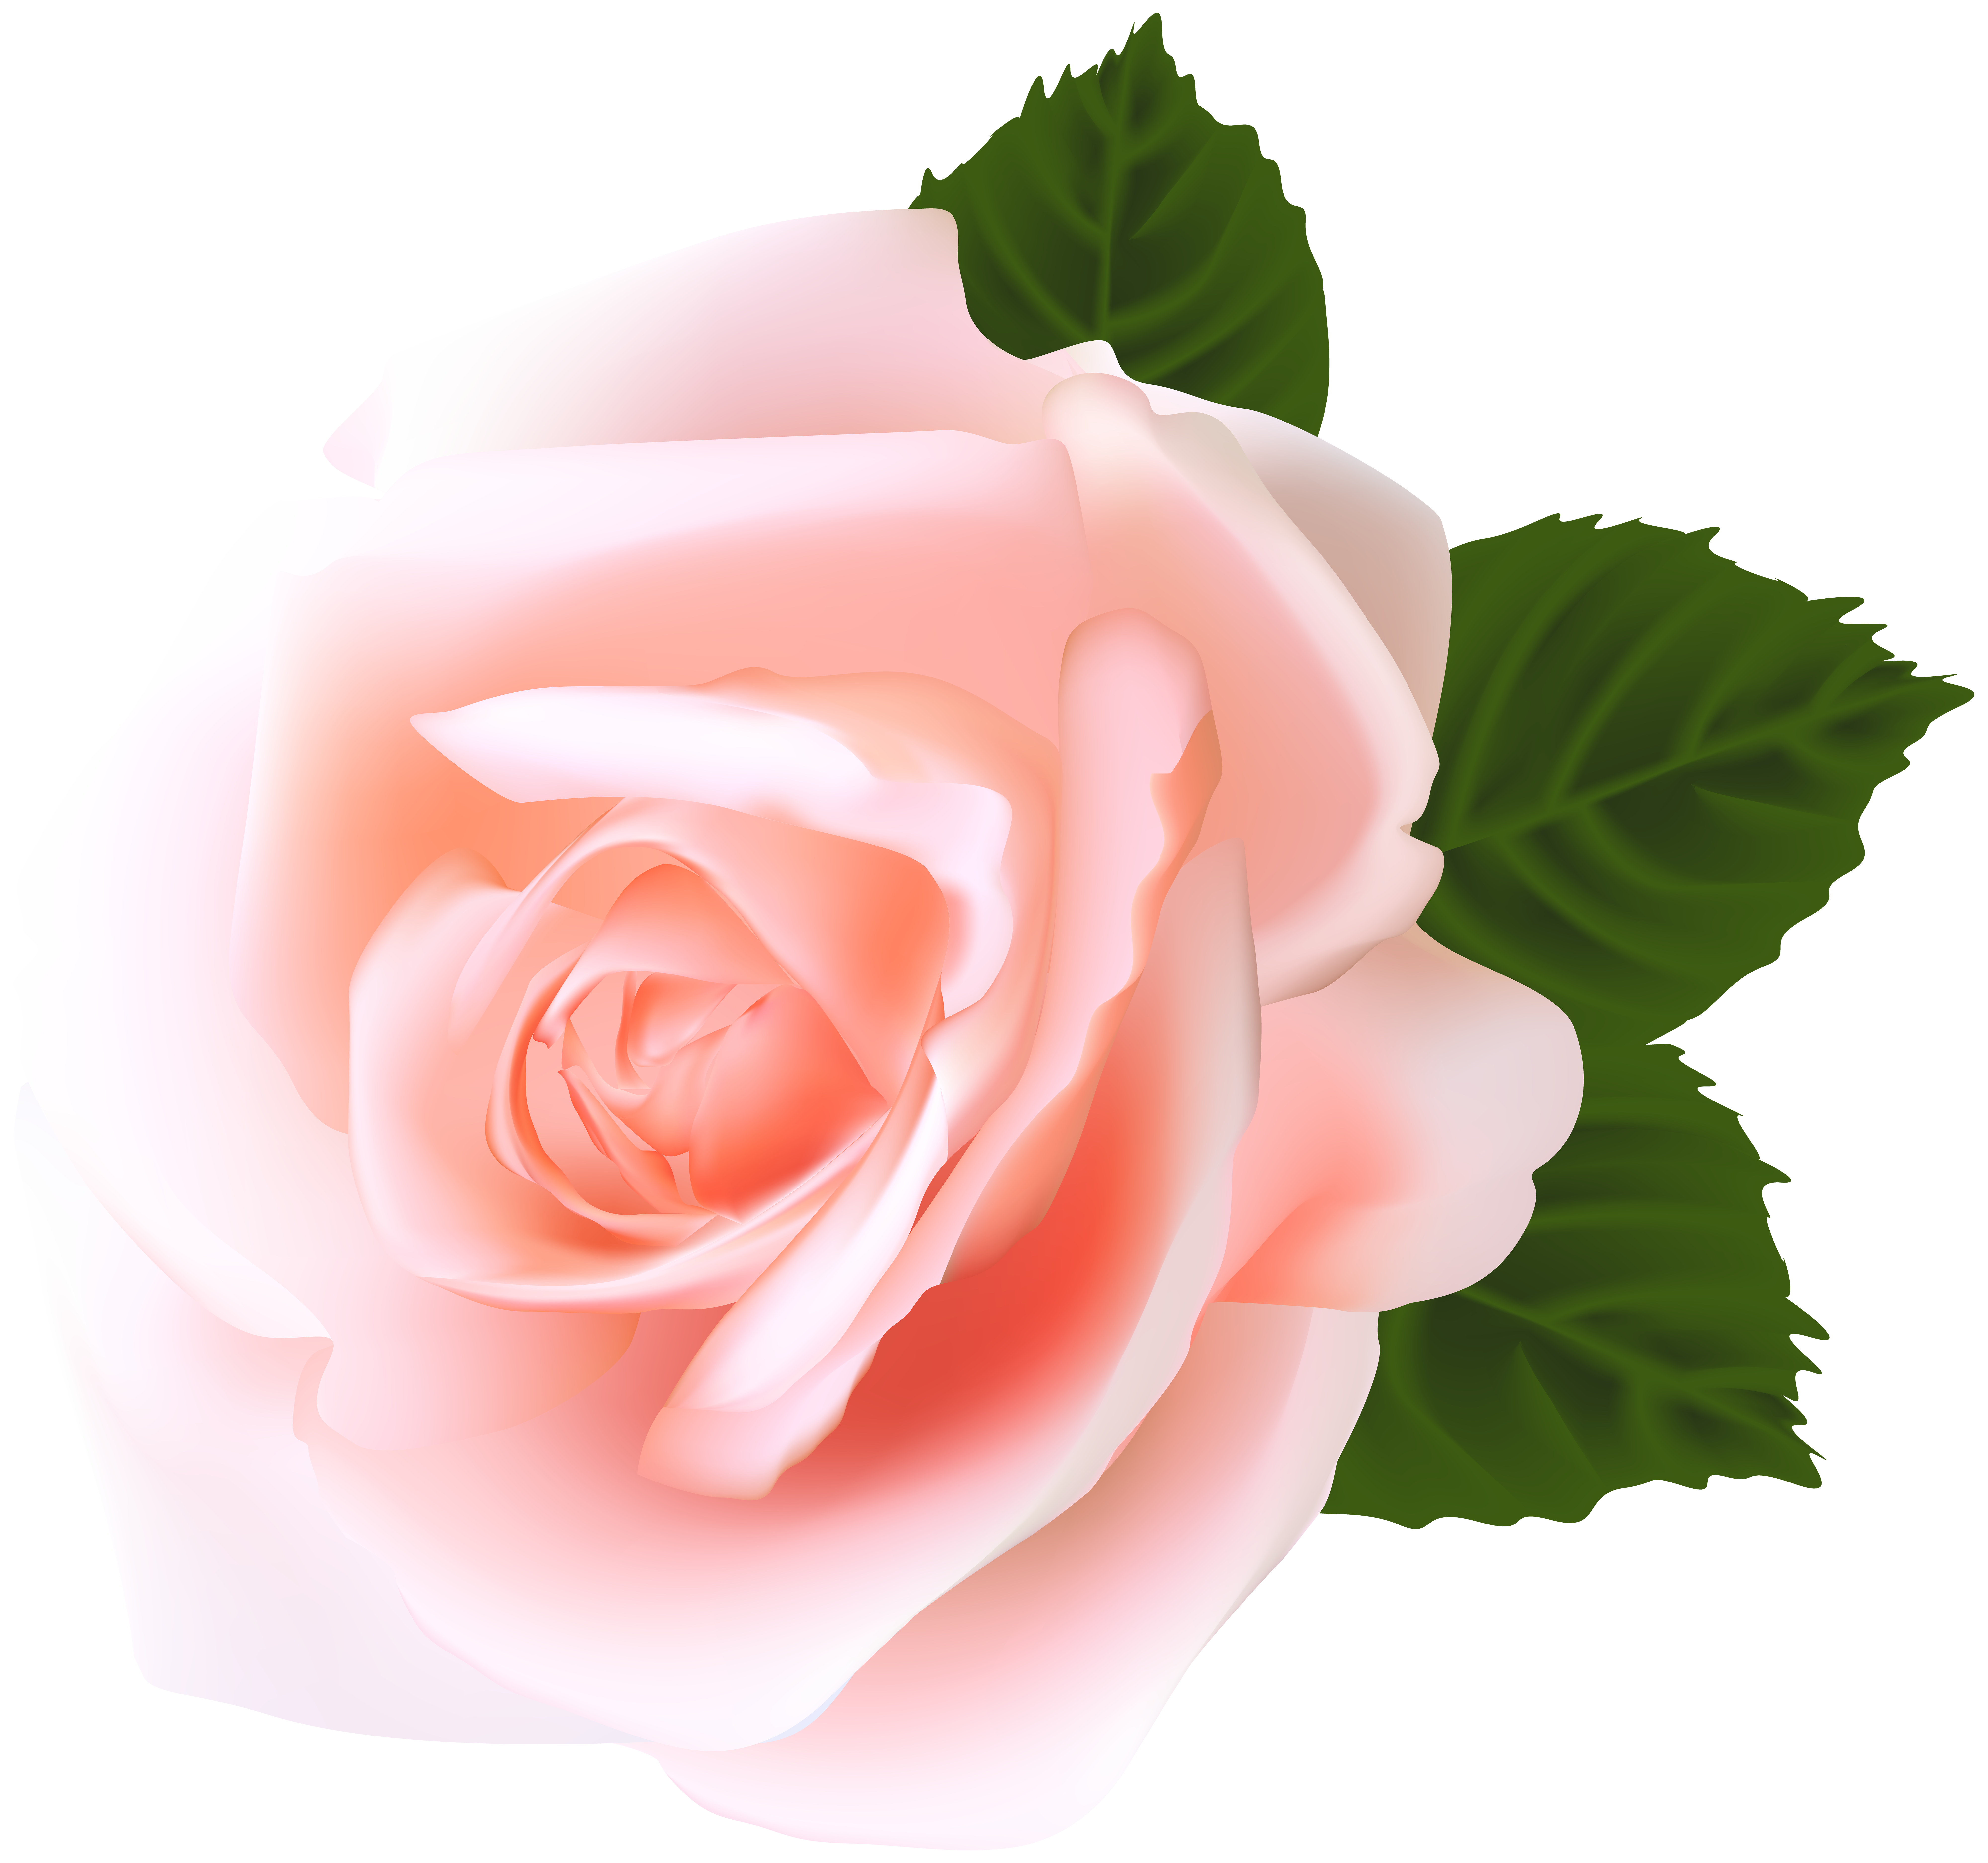 Rose Png Clip Art Gallery Yopriceville High Quality Images And Transparent Png Free Clipart Pink Rose Png Rose Images Hd Flower Wallpaper